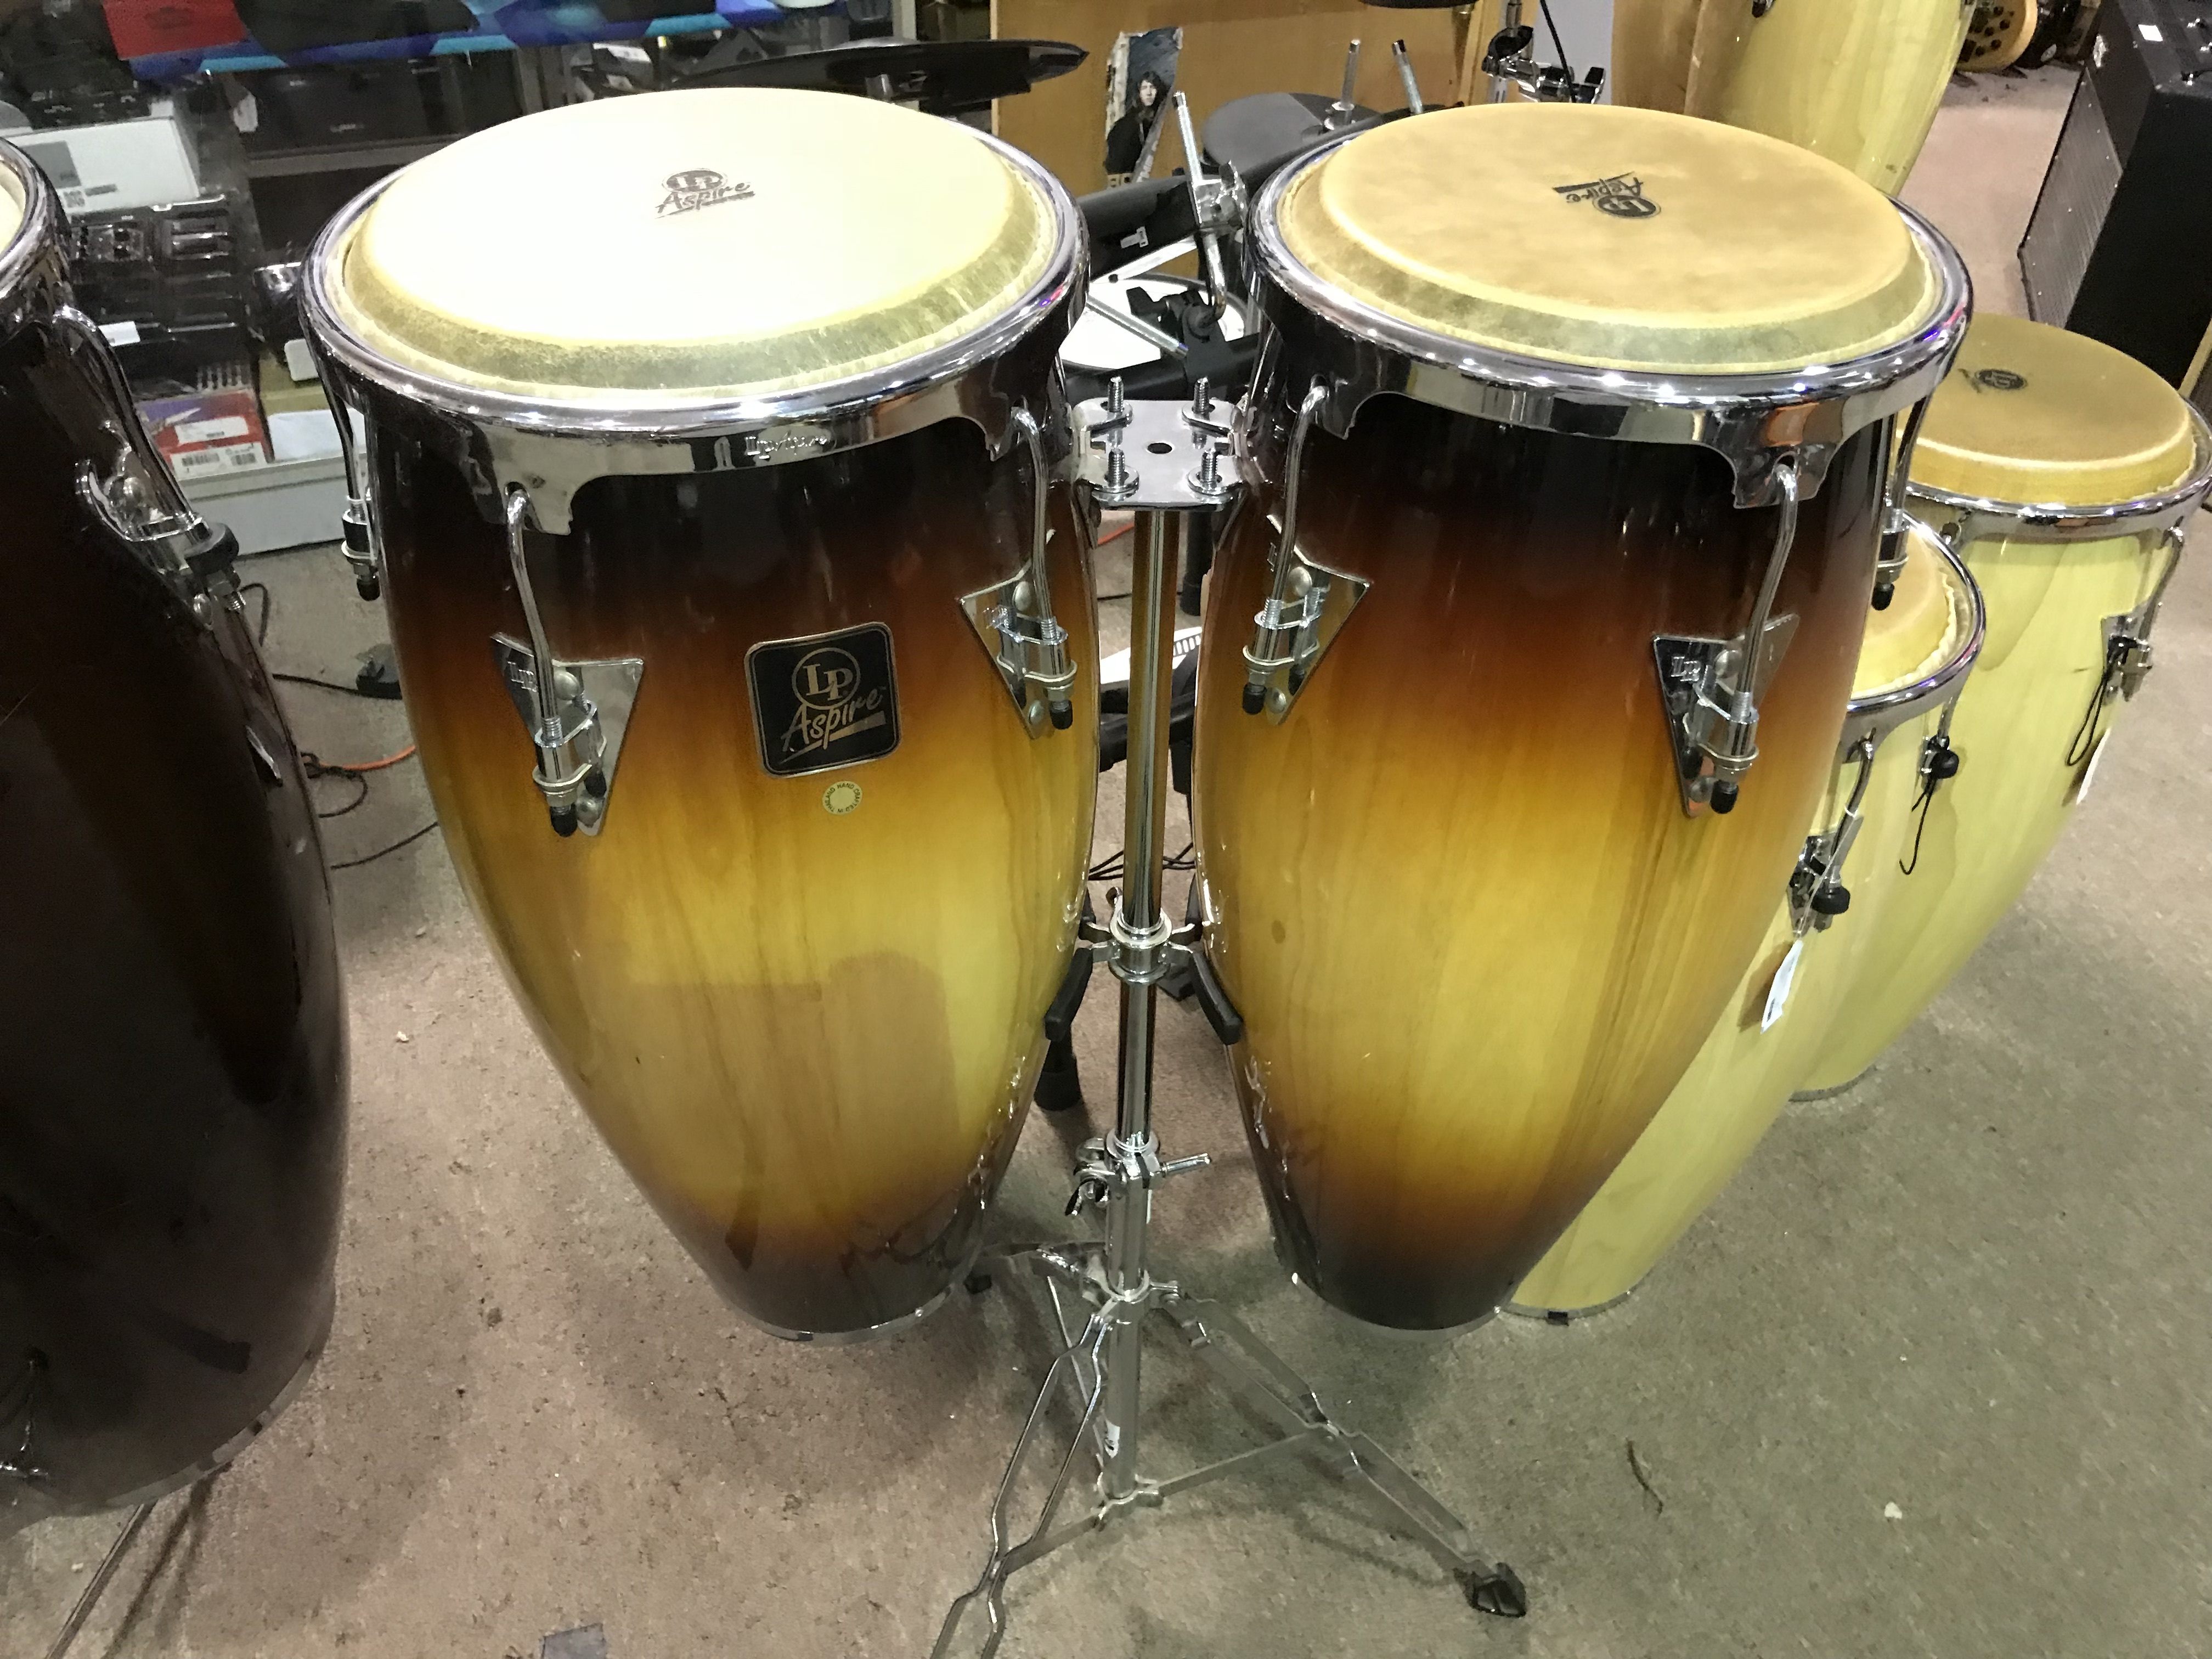 L.P. Aspire Conga Drums Pair with Stand